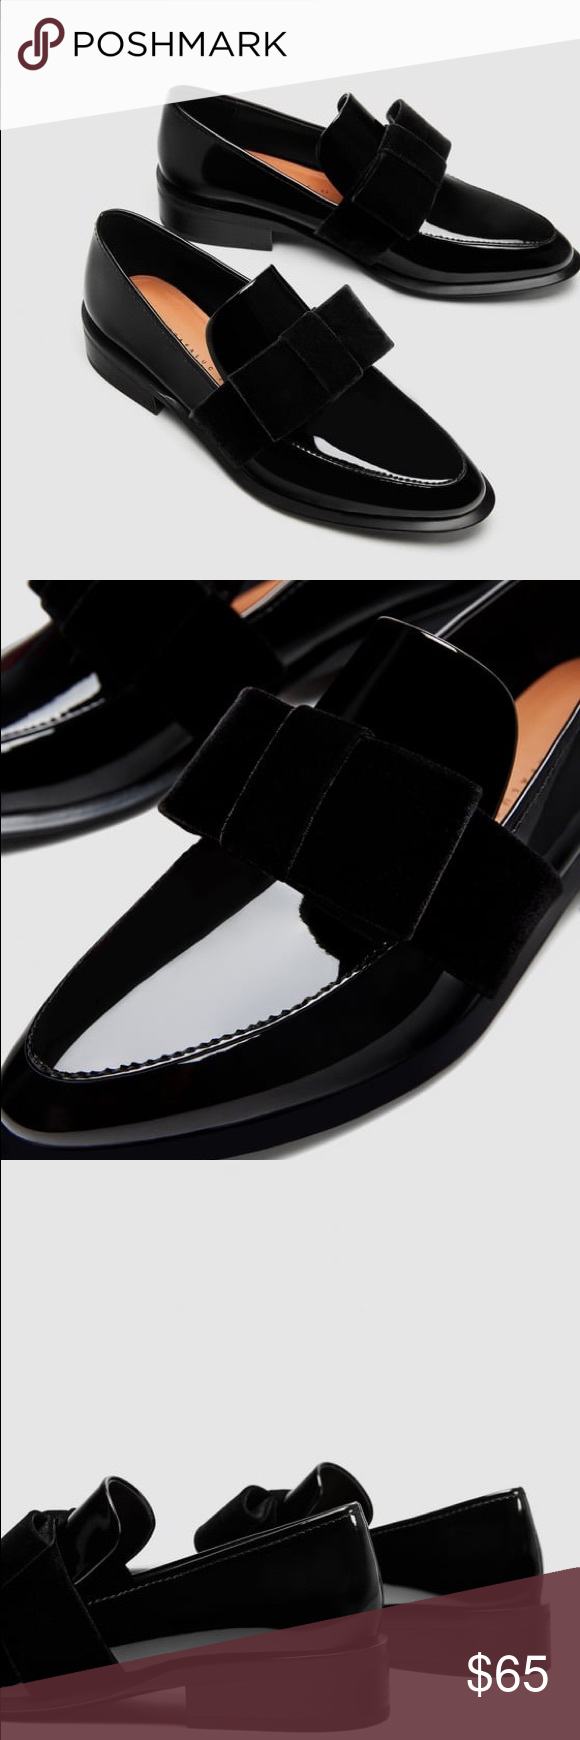 072bf46fb21 NWT Zara Faux Patent Leather Velvet Bow Loafers Flat black shoes with  velvet bow on the instep. Heel height of 3